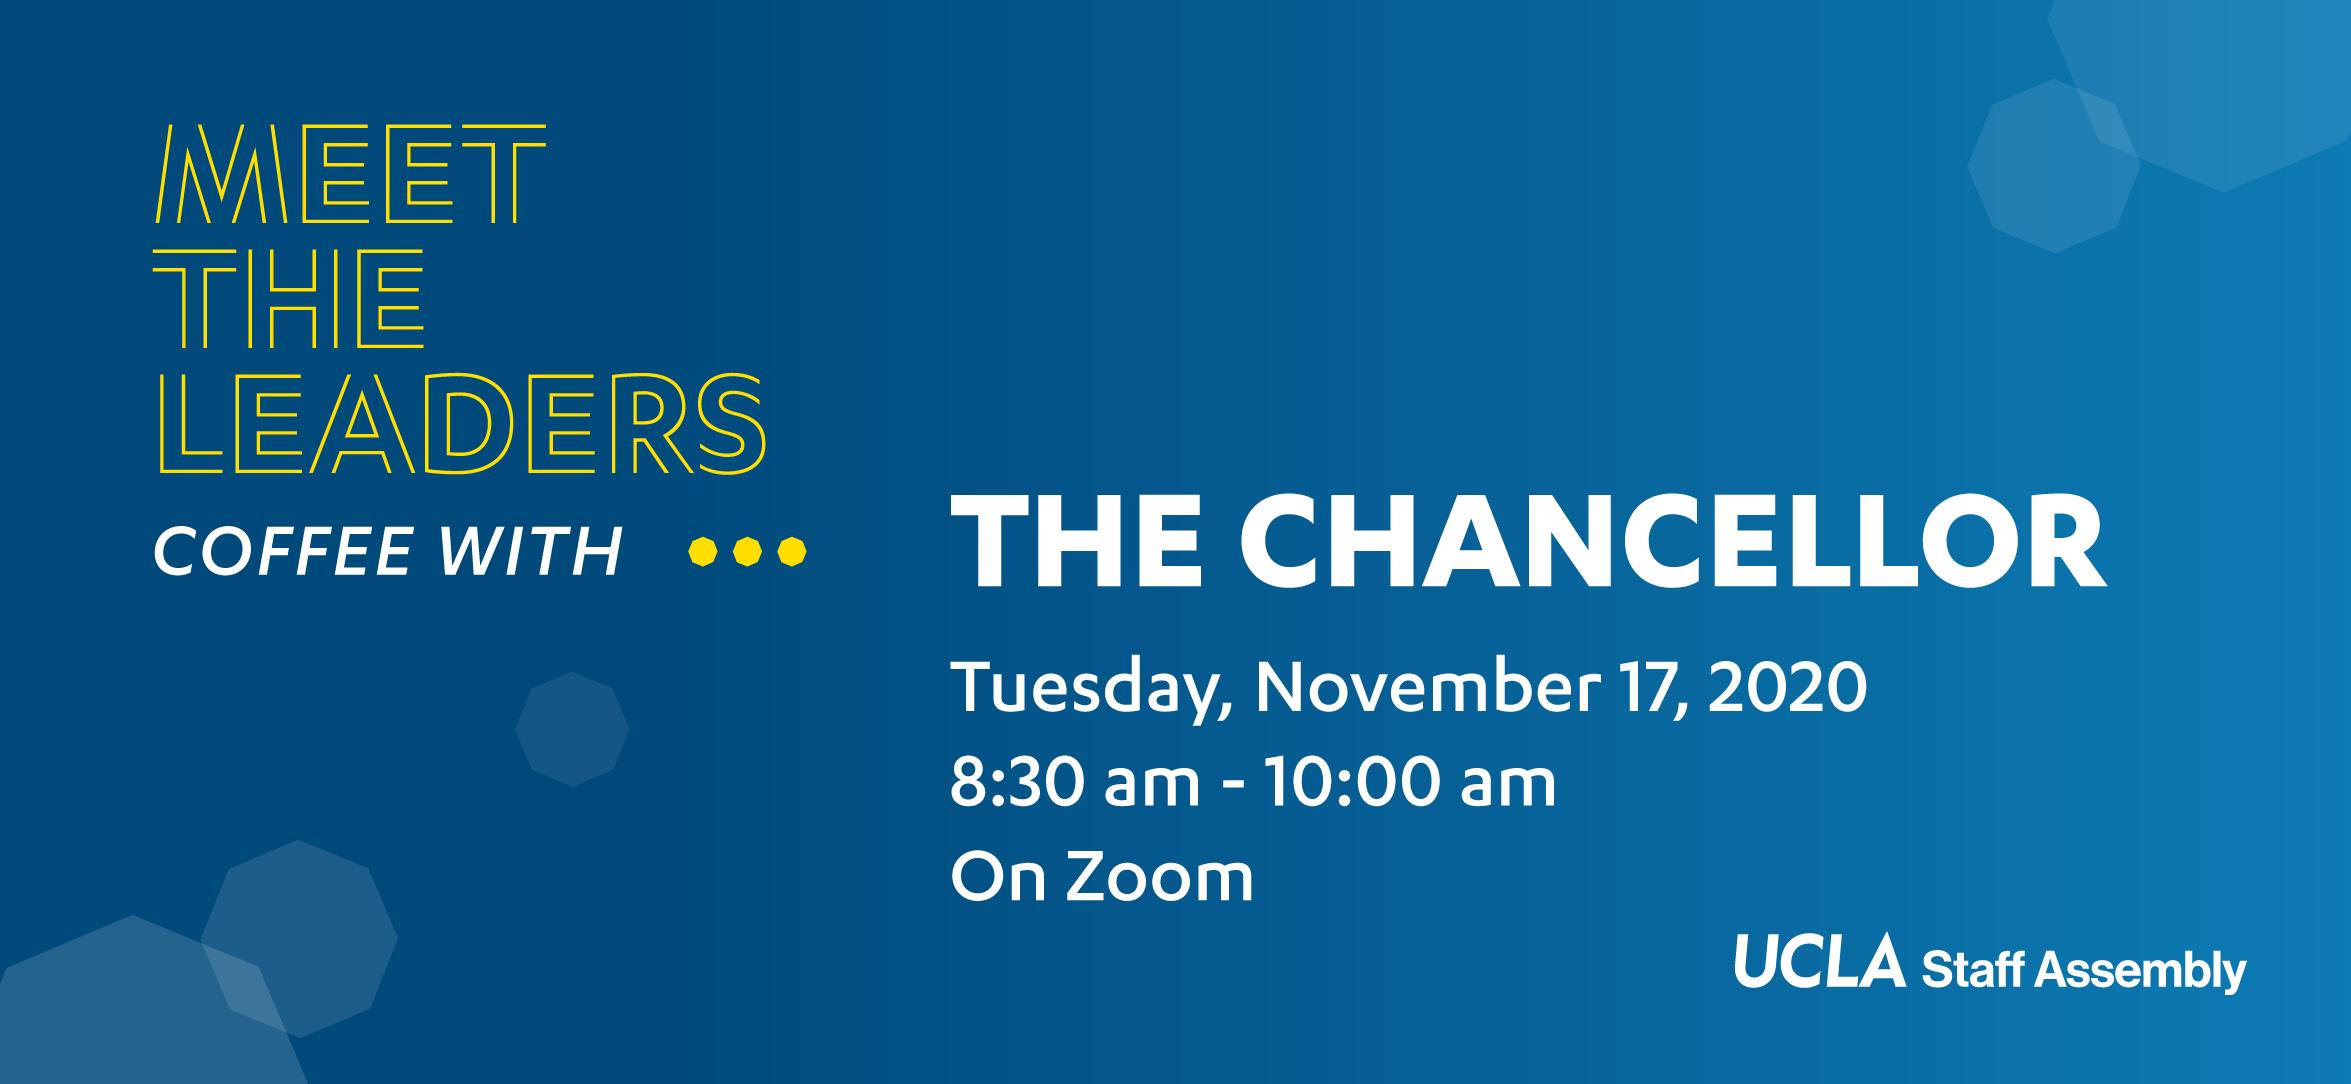 Coffee with the Chancellor - Tuesday, November 17, 2020, 8:30am - 10am, on Zoom